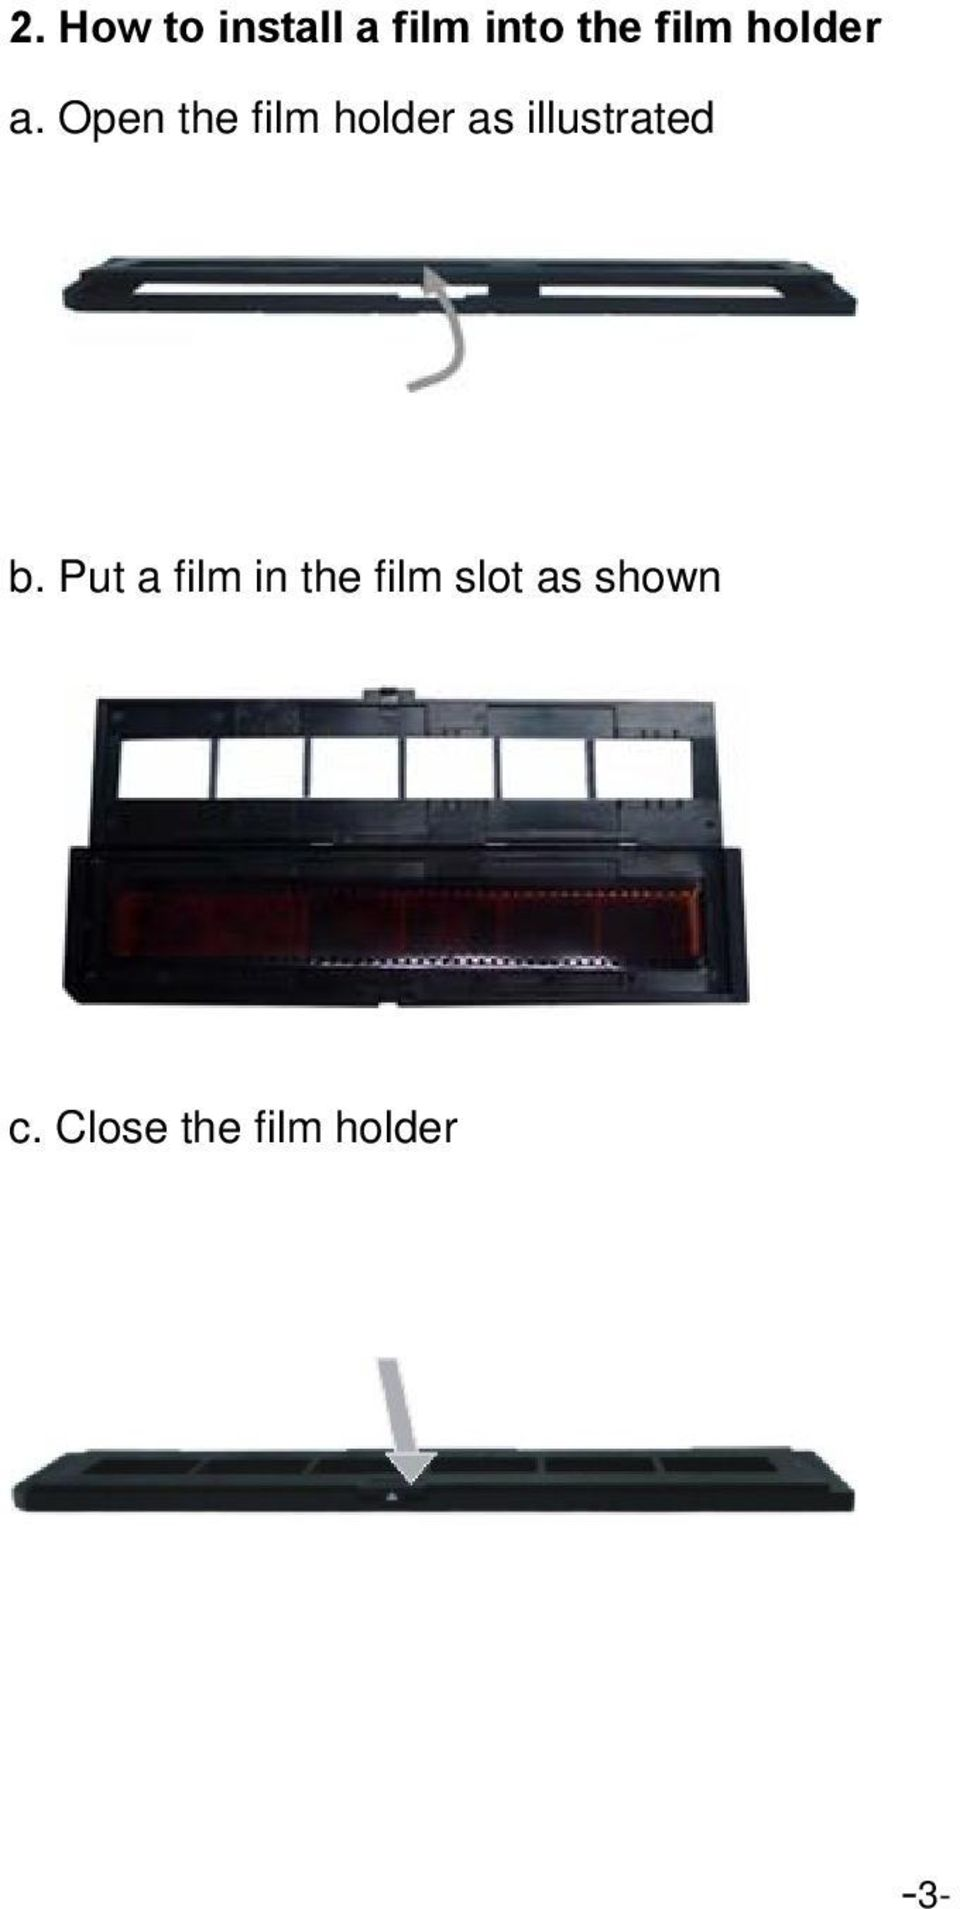 Open the film holder as illustrated b.